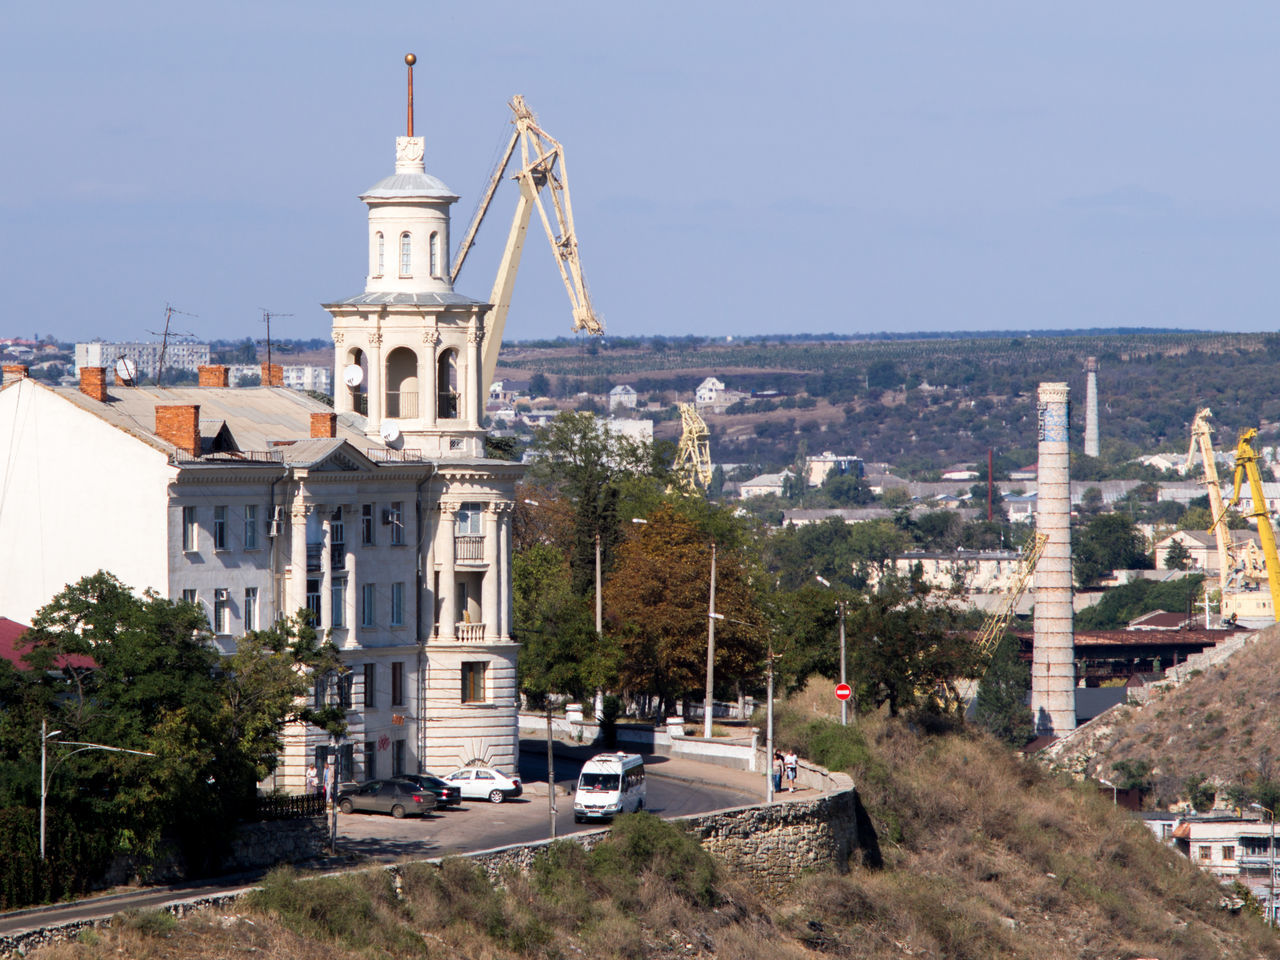 Architecture Building City City Landscape Cityscape Crane Crimea Day Gawlet Landscape No People Outdoors Russia Sevastopol  Sky